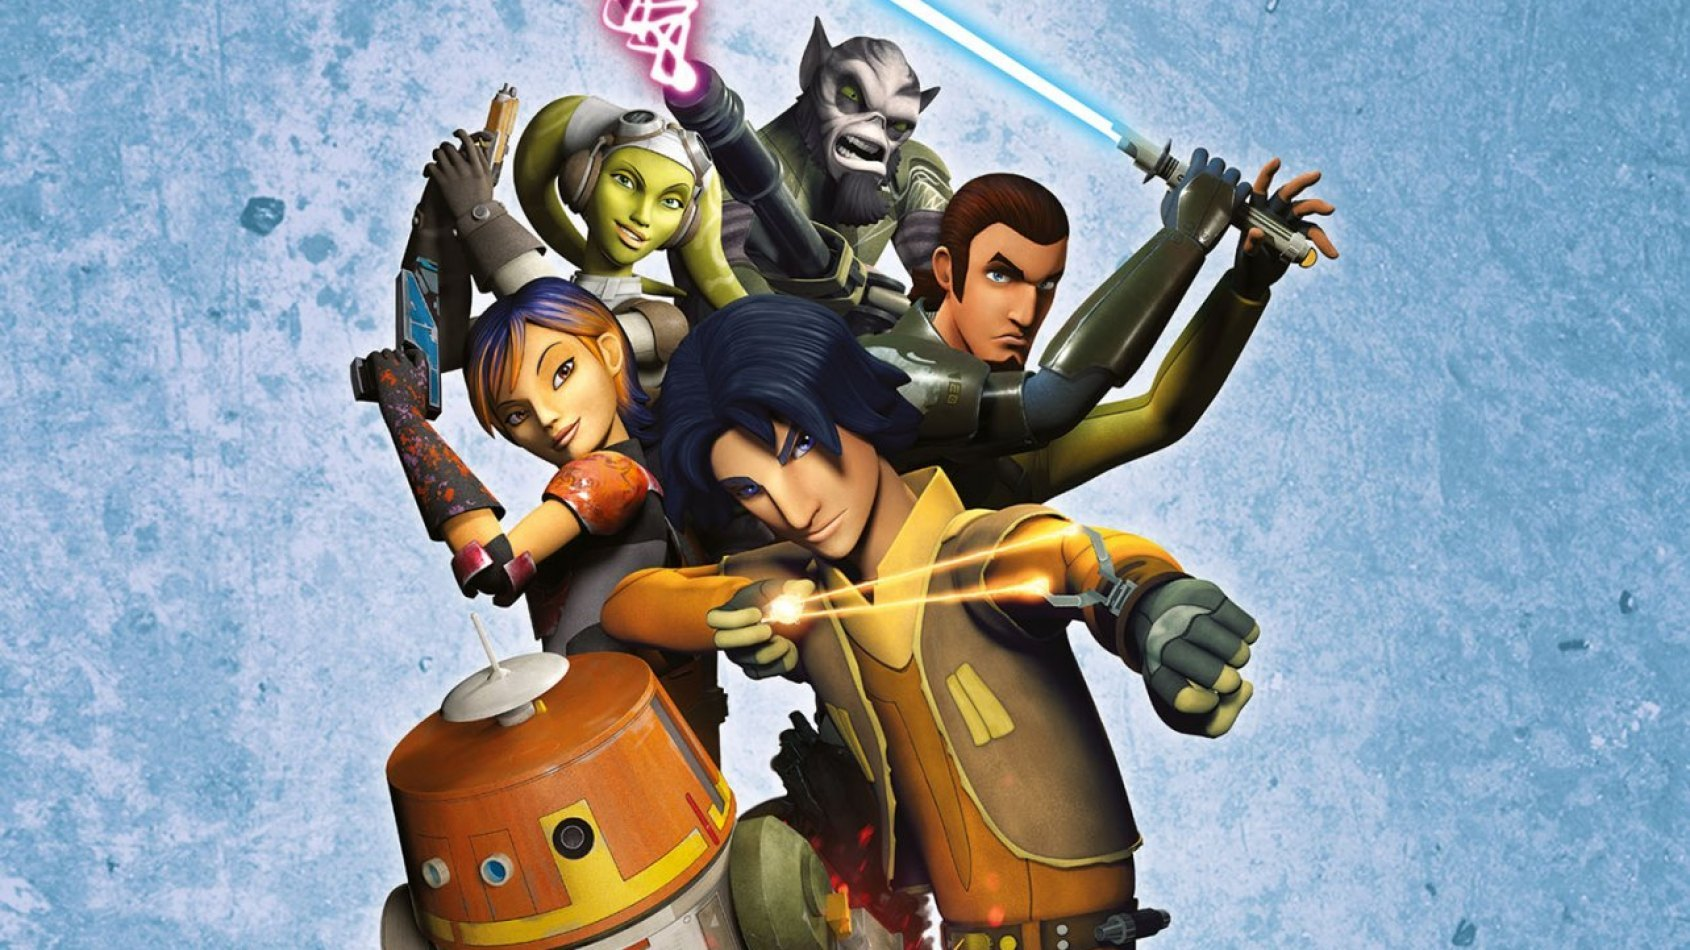 Review : Star Wars Rebels 4